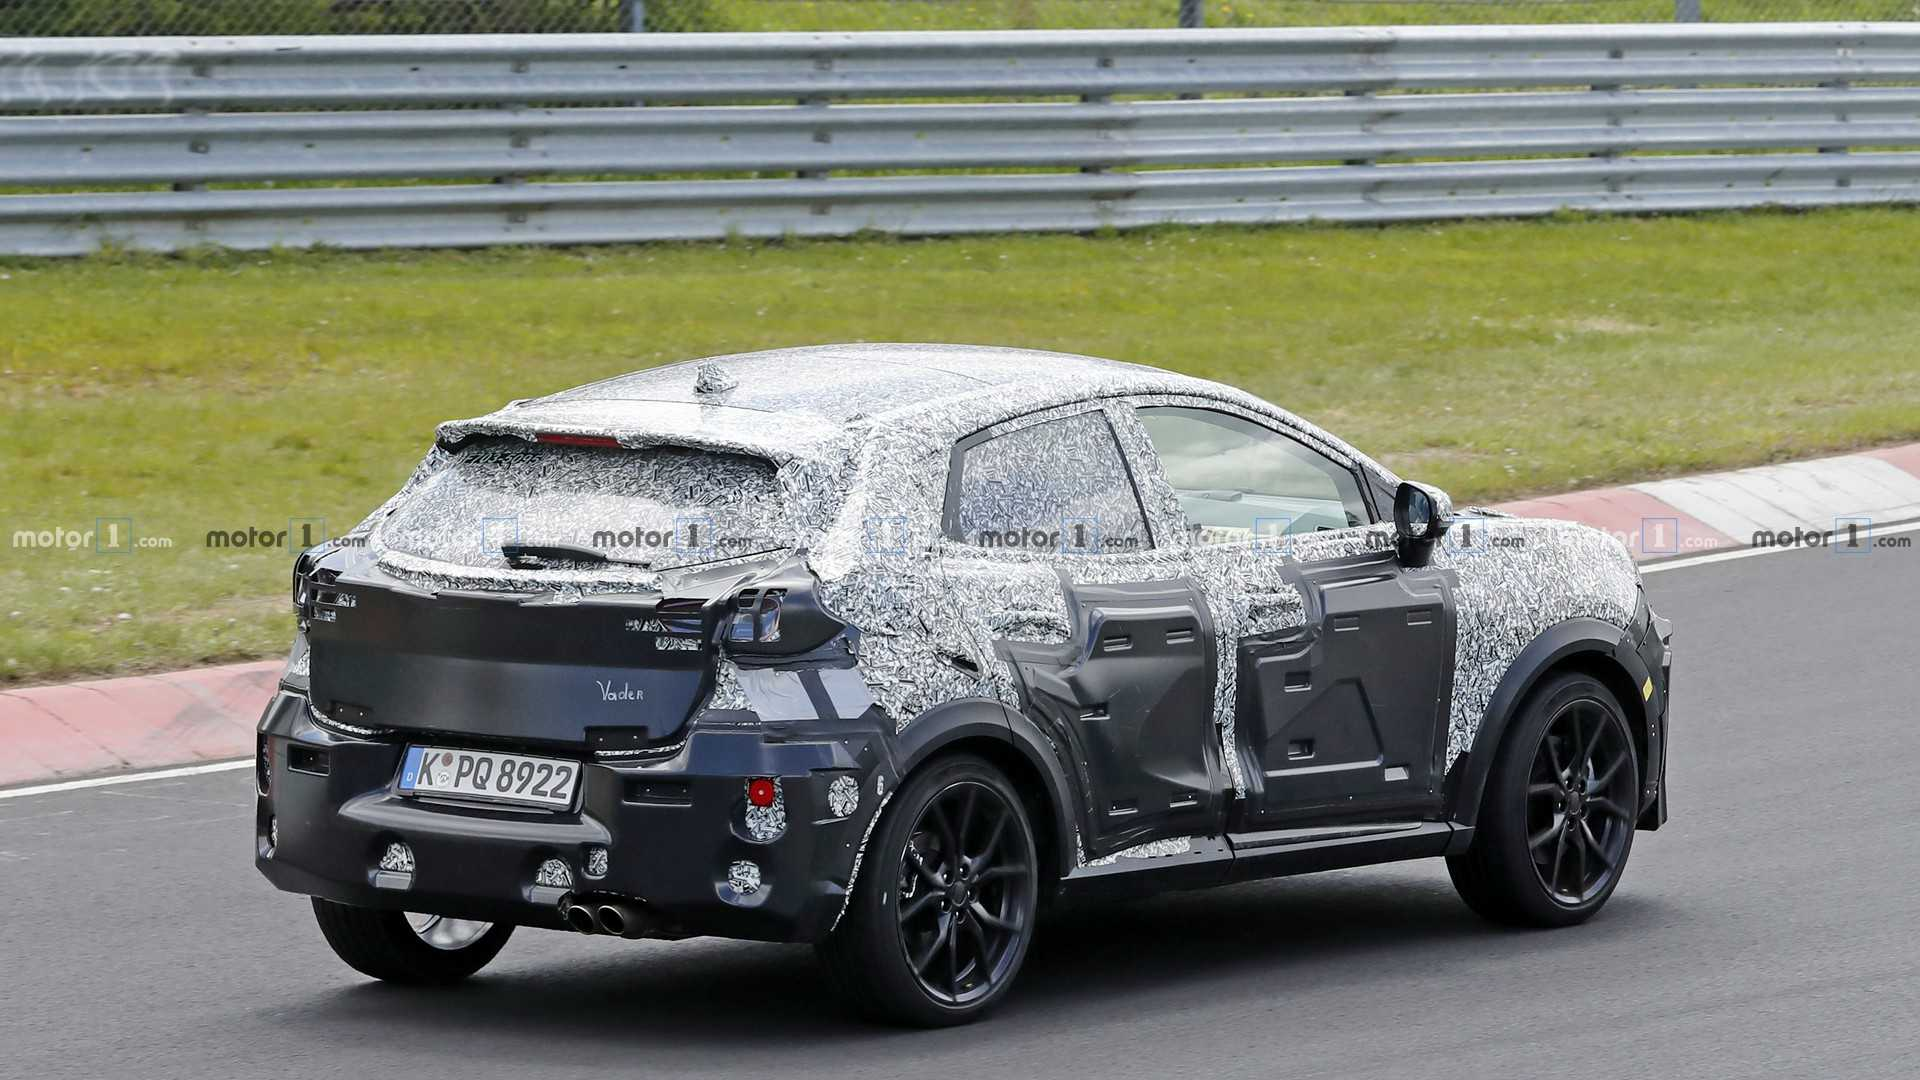 2021 Ford Puma Spy Photos, Release Date >> Sporty Ford Puma St Spied For The First Time Update